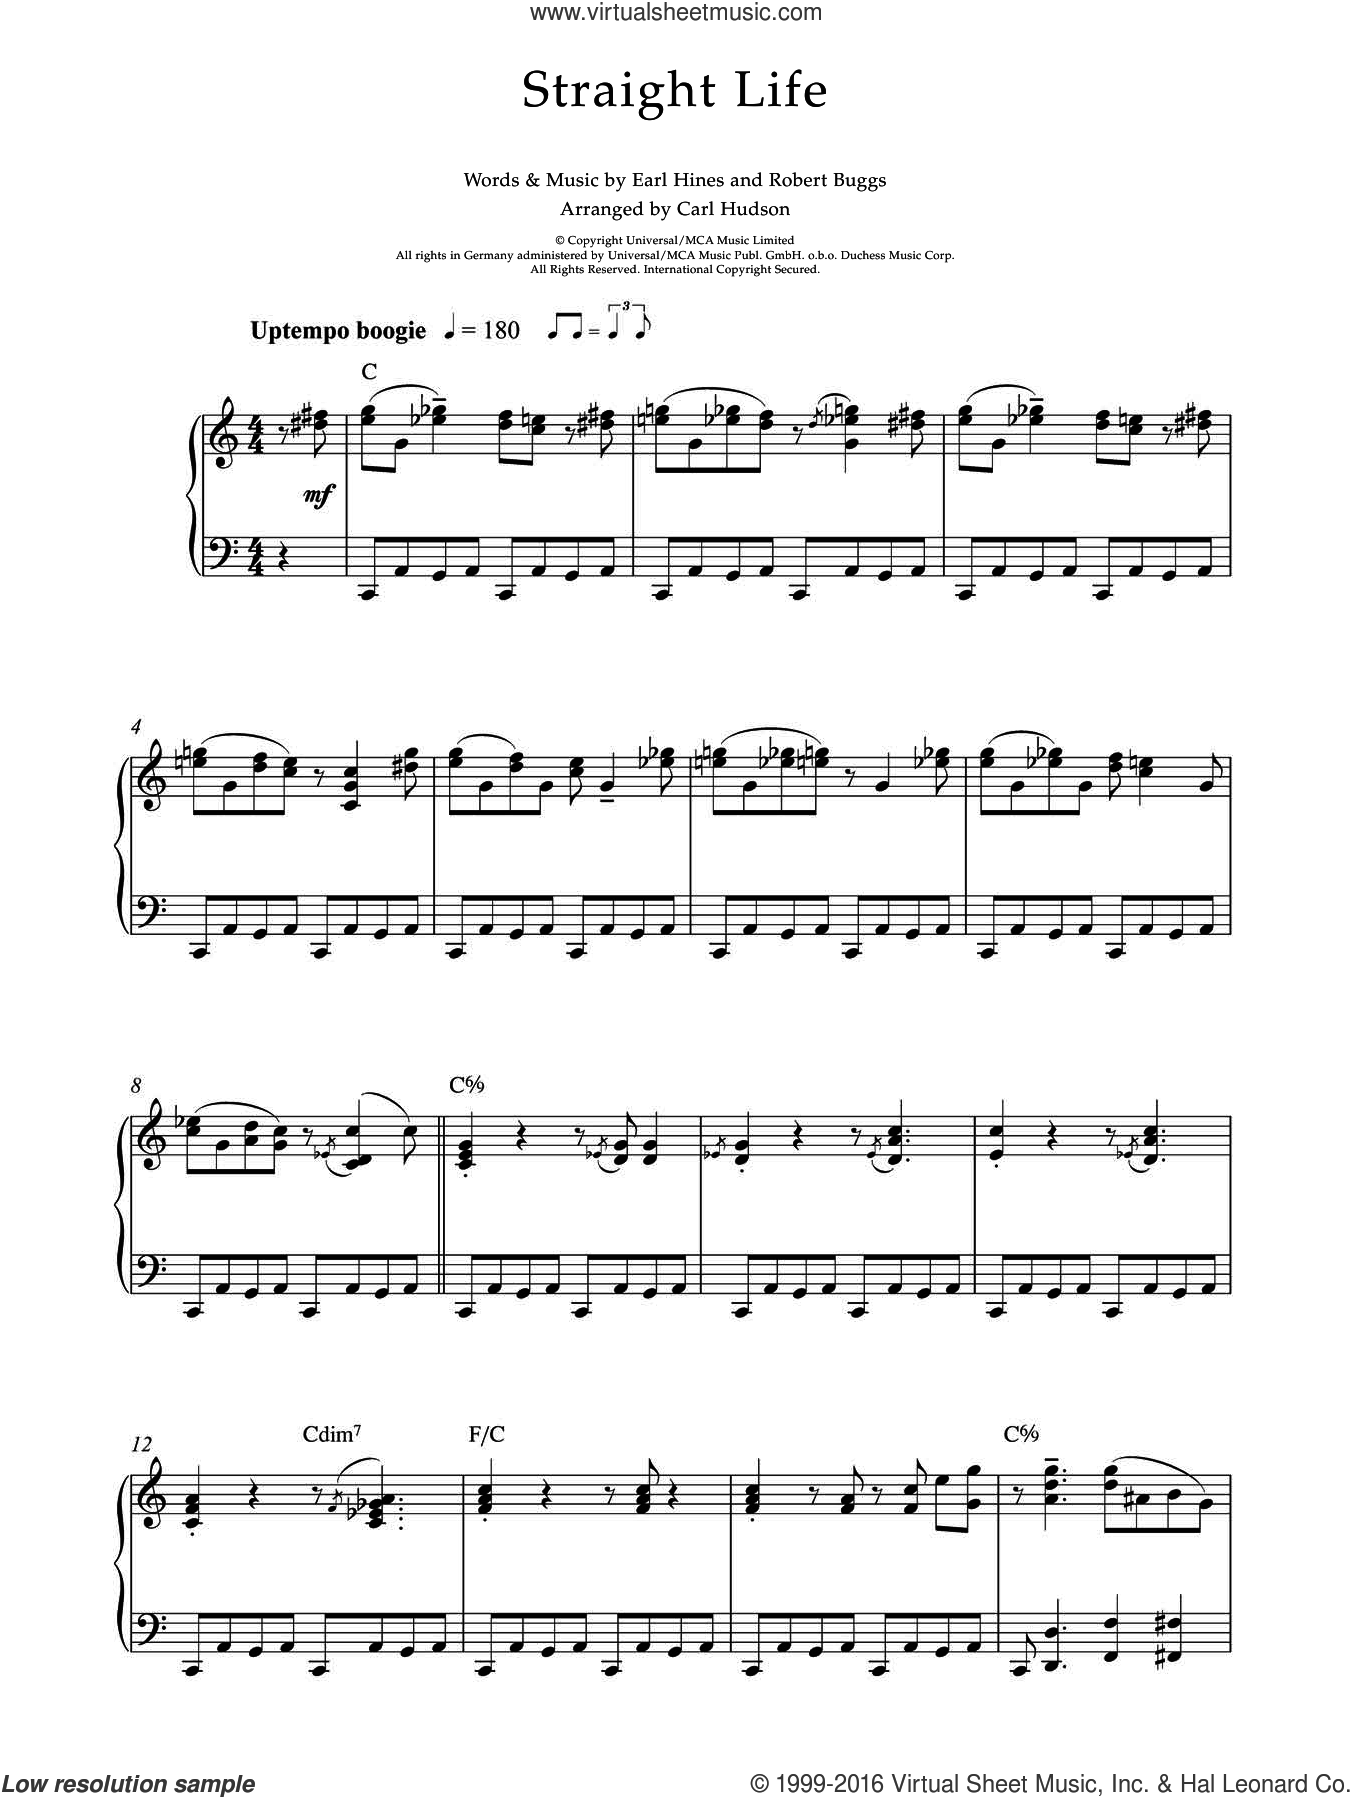 Straight Life sheet music for piano solo by Earl Hines and Roberts Buggs, intermediate skill level